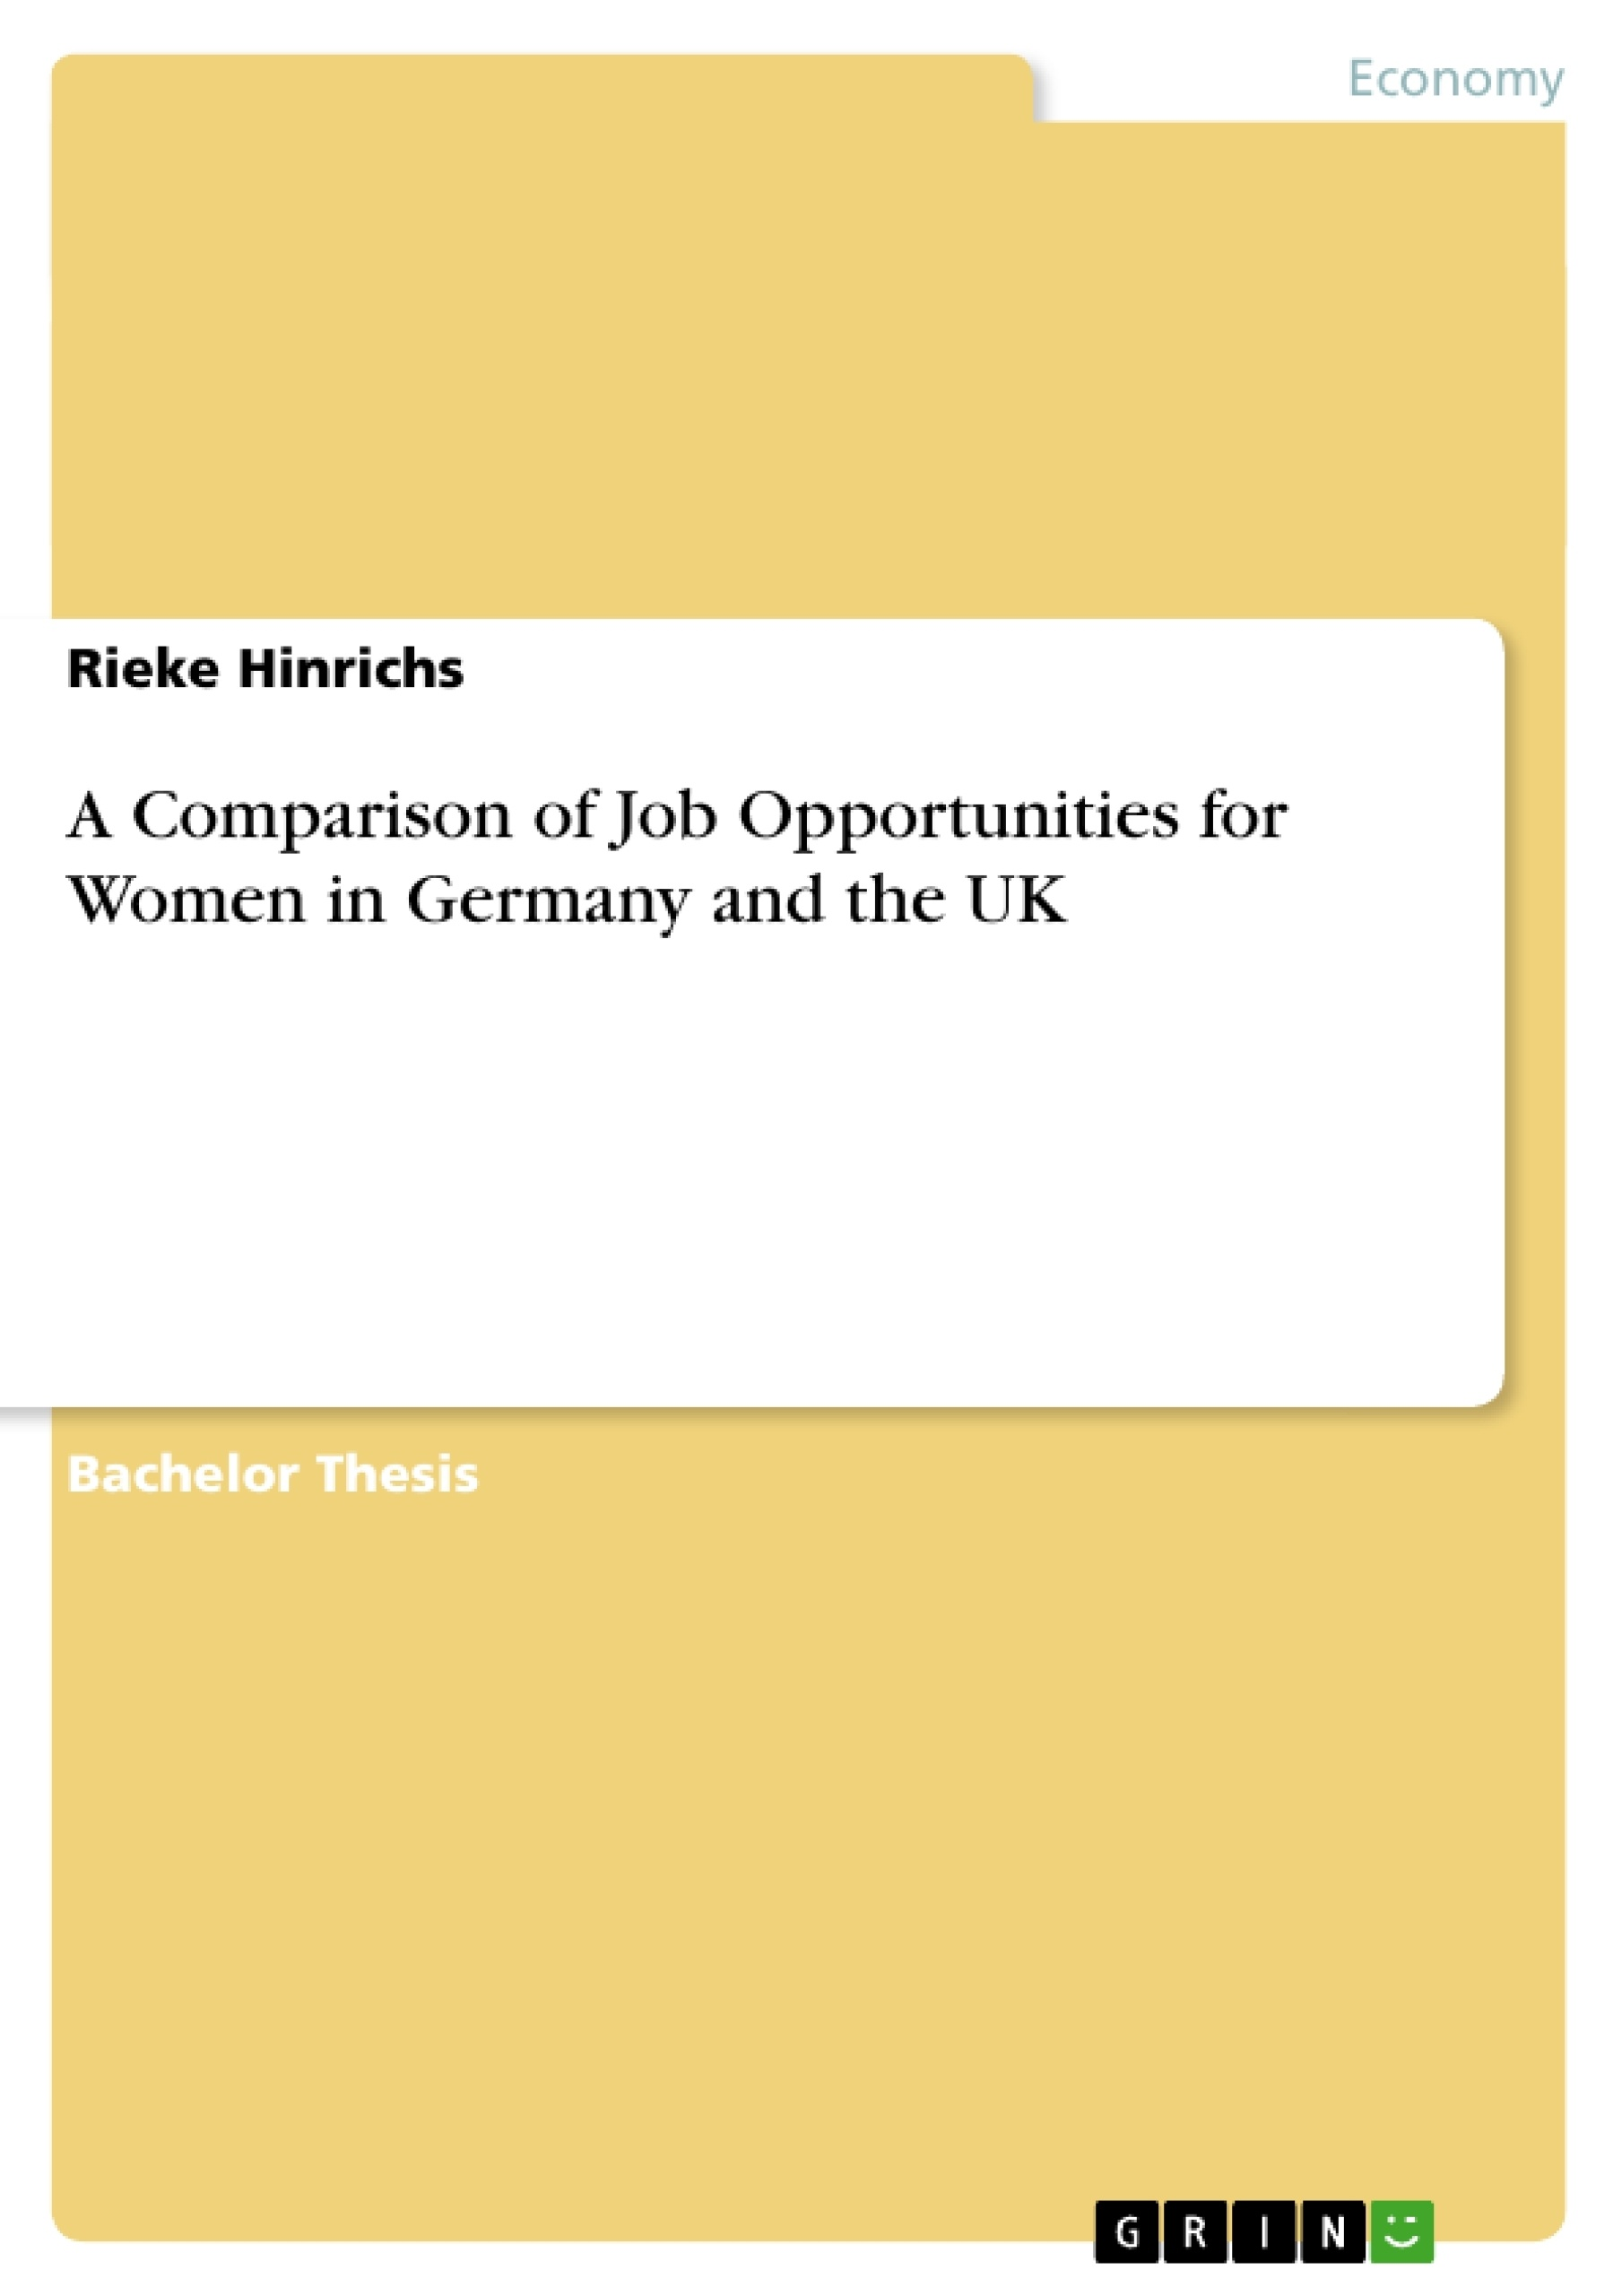 Title: A Comparison of Job Opportunities for Women in Germany and the UK